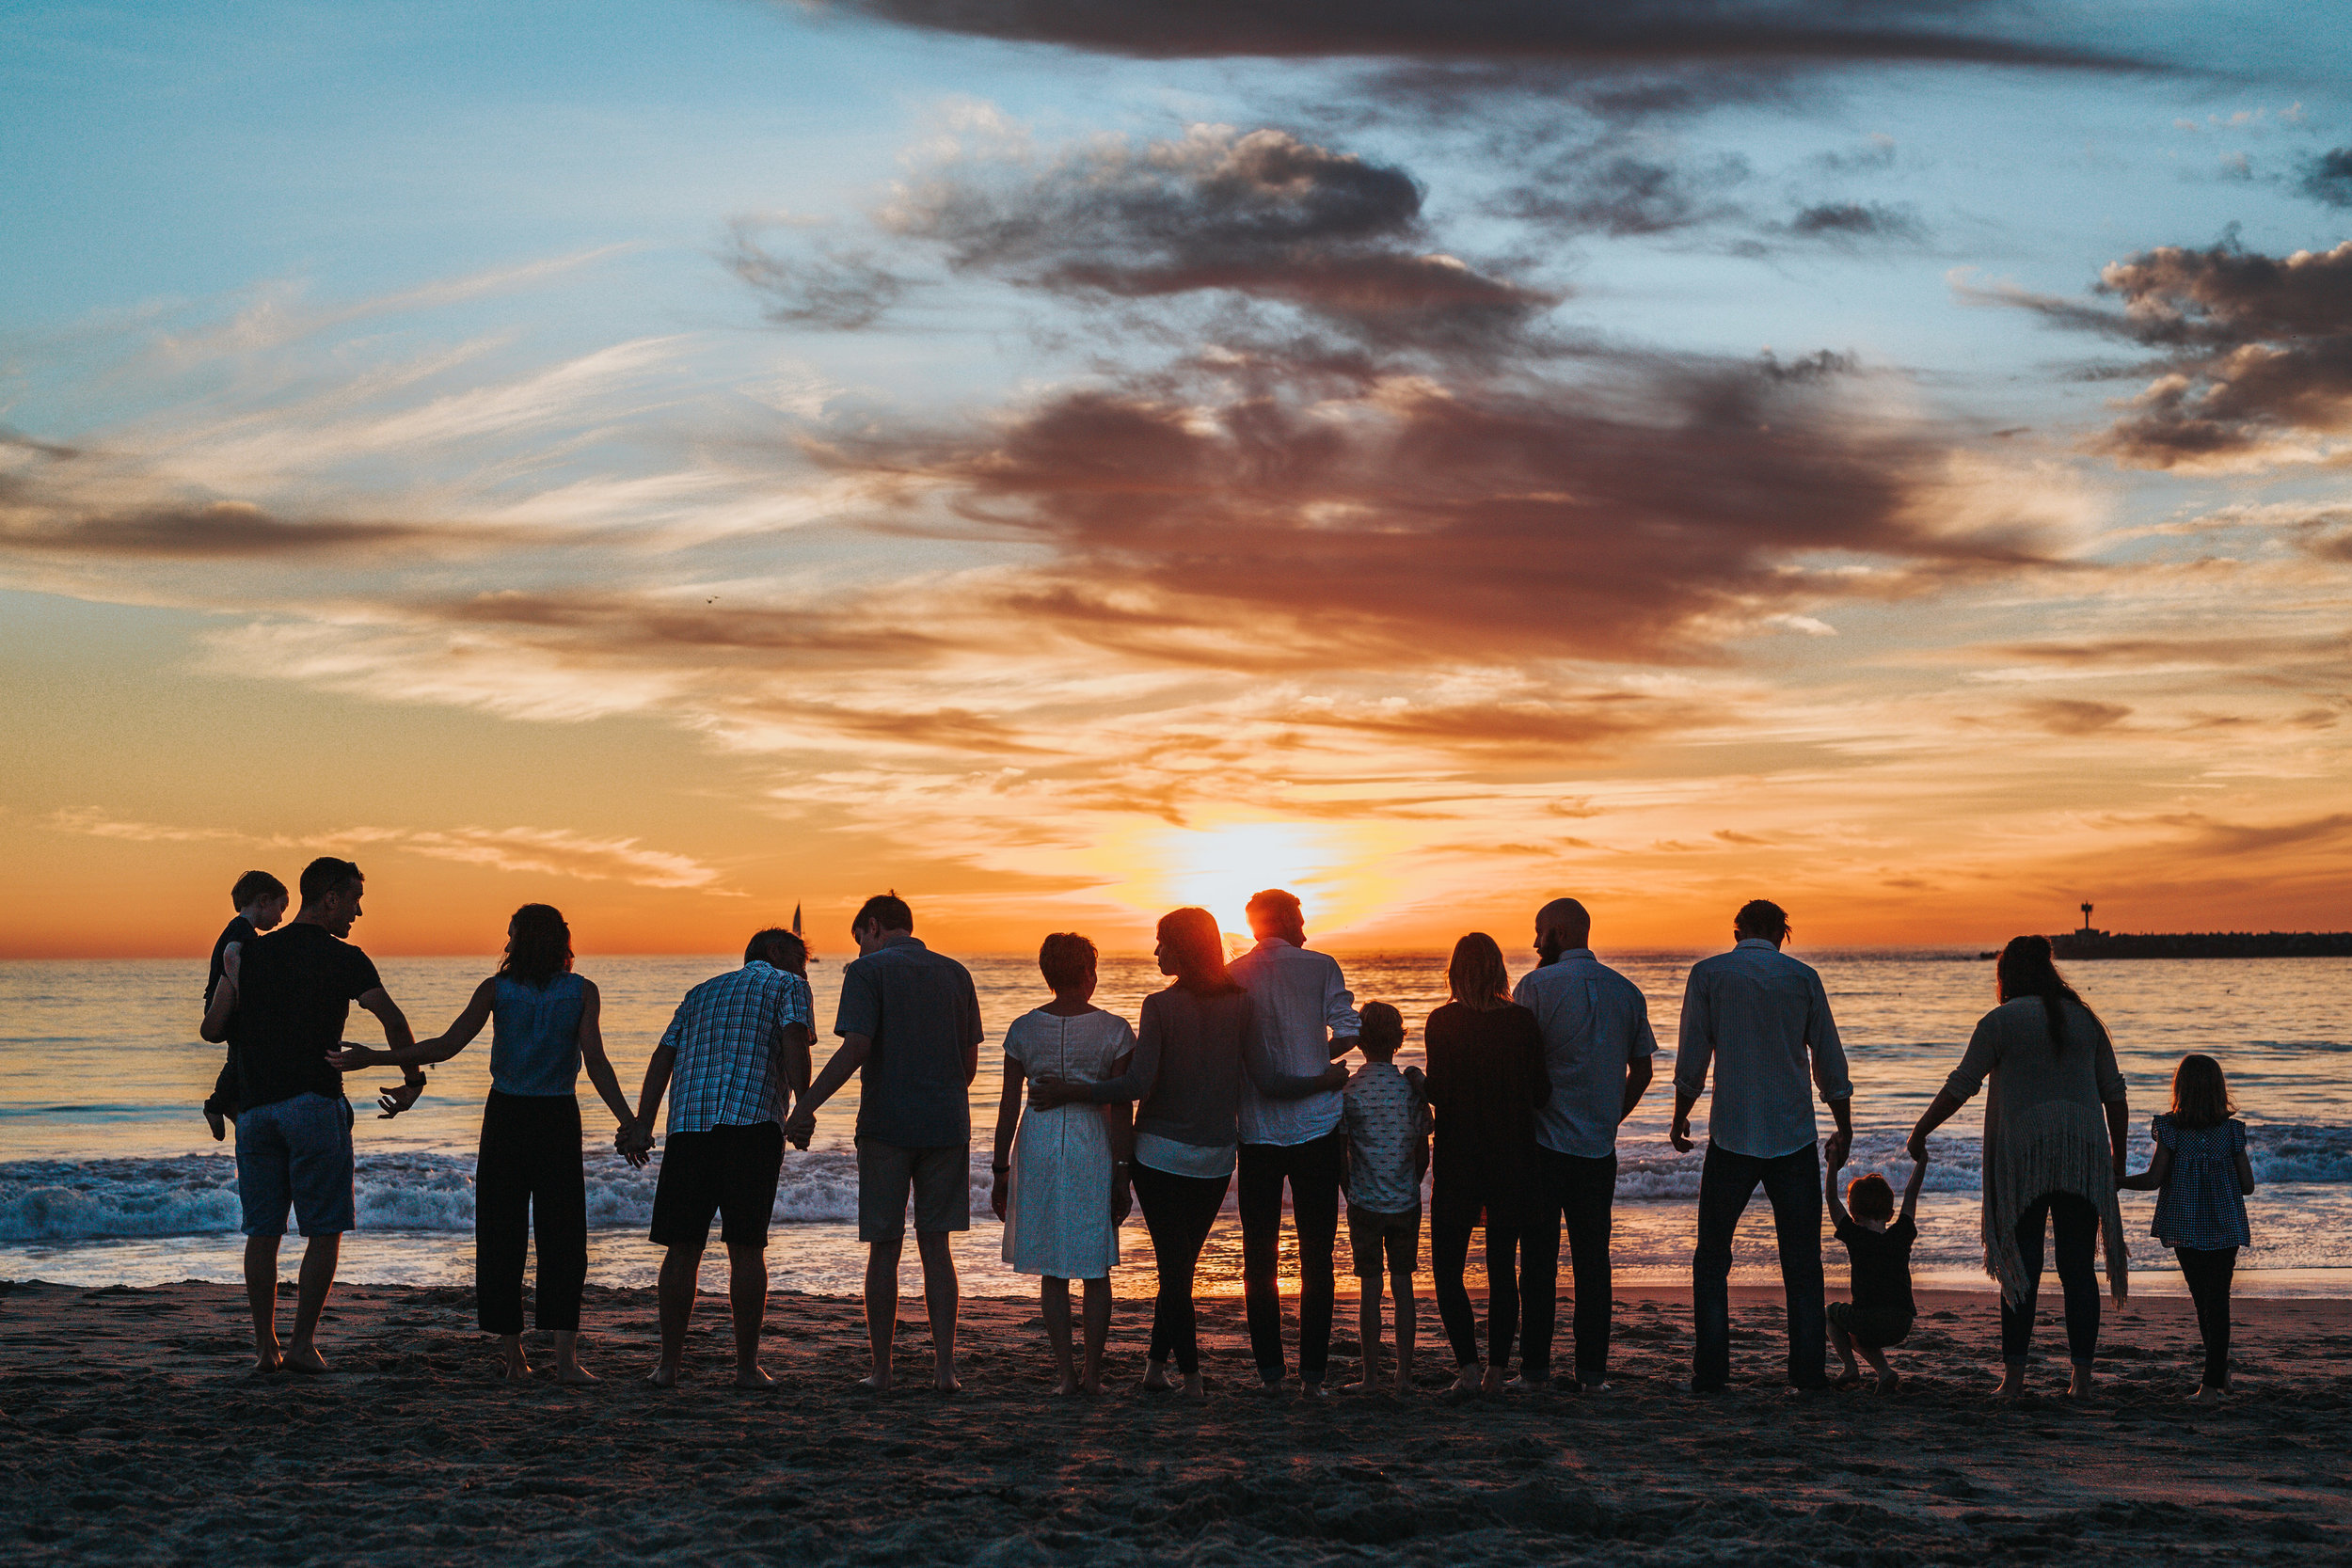 2. monthly meetings or an annual family retreat? - We will explore each member's potential and frustrations based on your common story and the vision of your collective future as a family group.